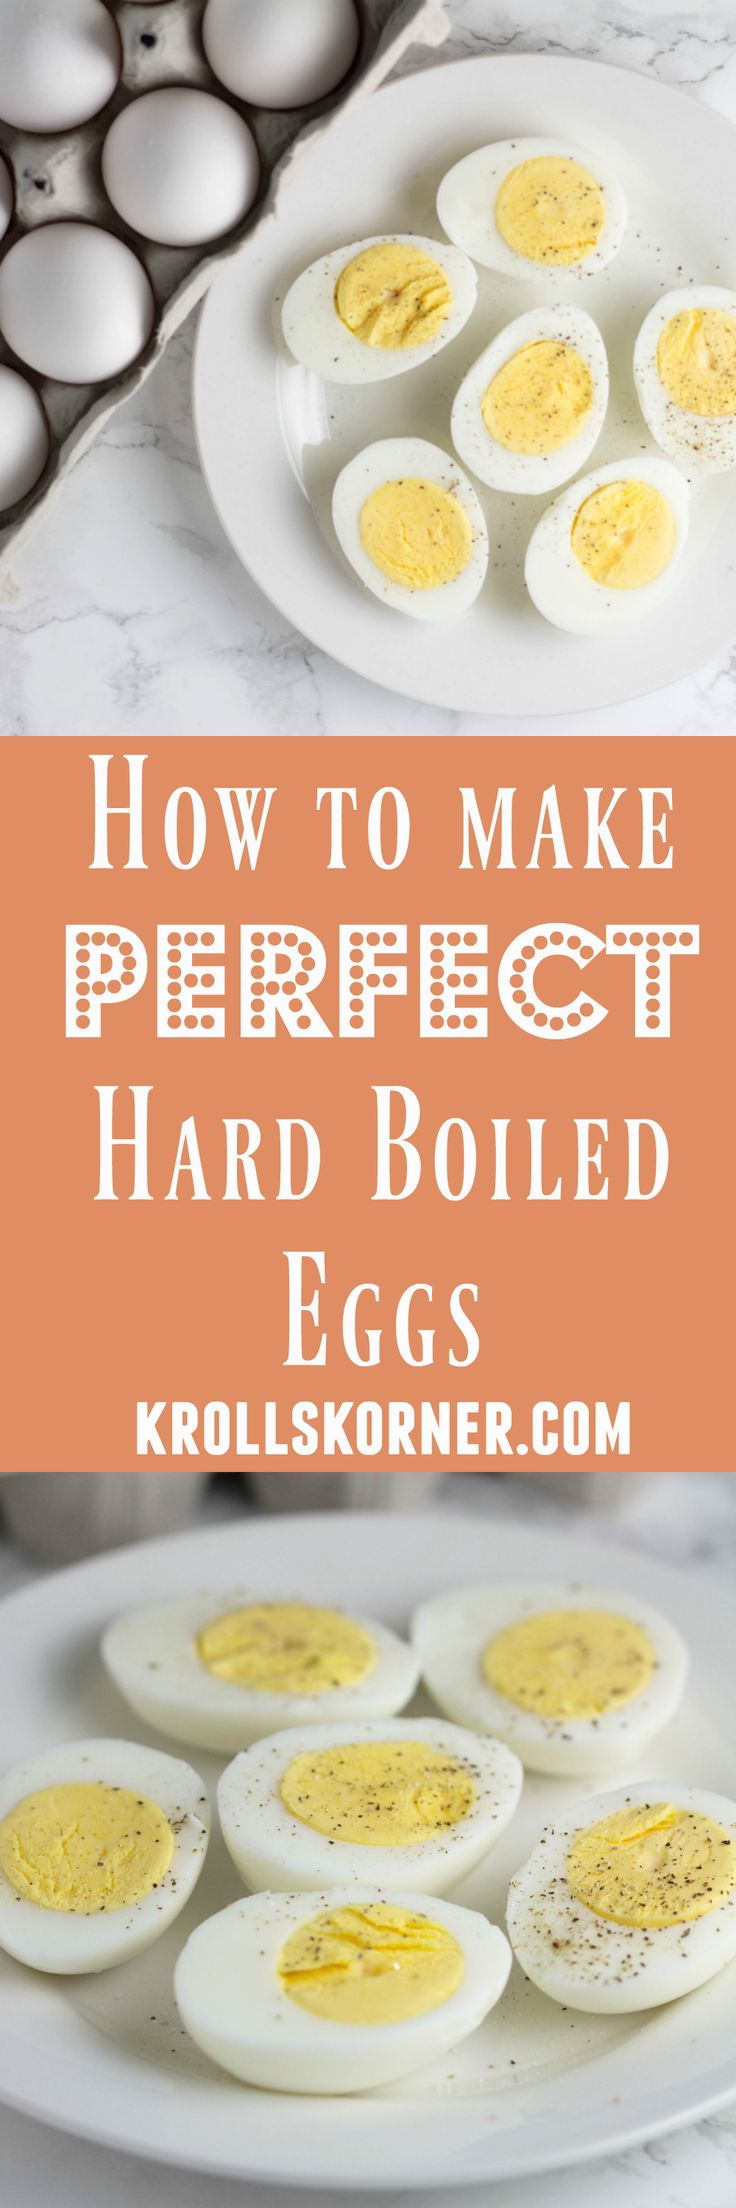 Best 25+ Making Hard Boiled Eggs Ideas On Pinterest  Hard Boiled, How To Boil  Eggs And Perfect Hard Boiled Eggs